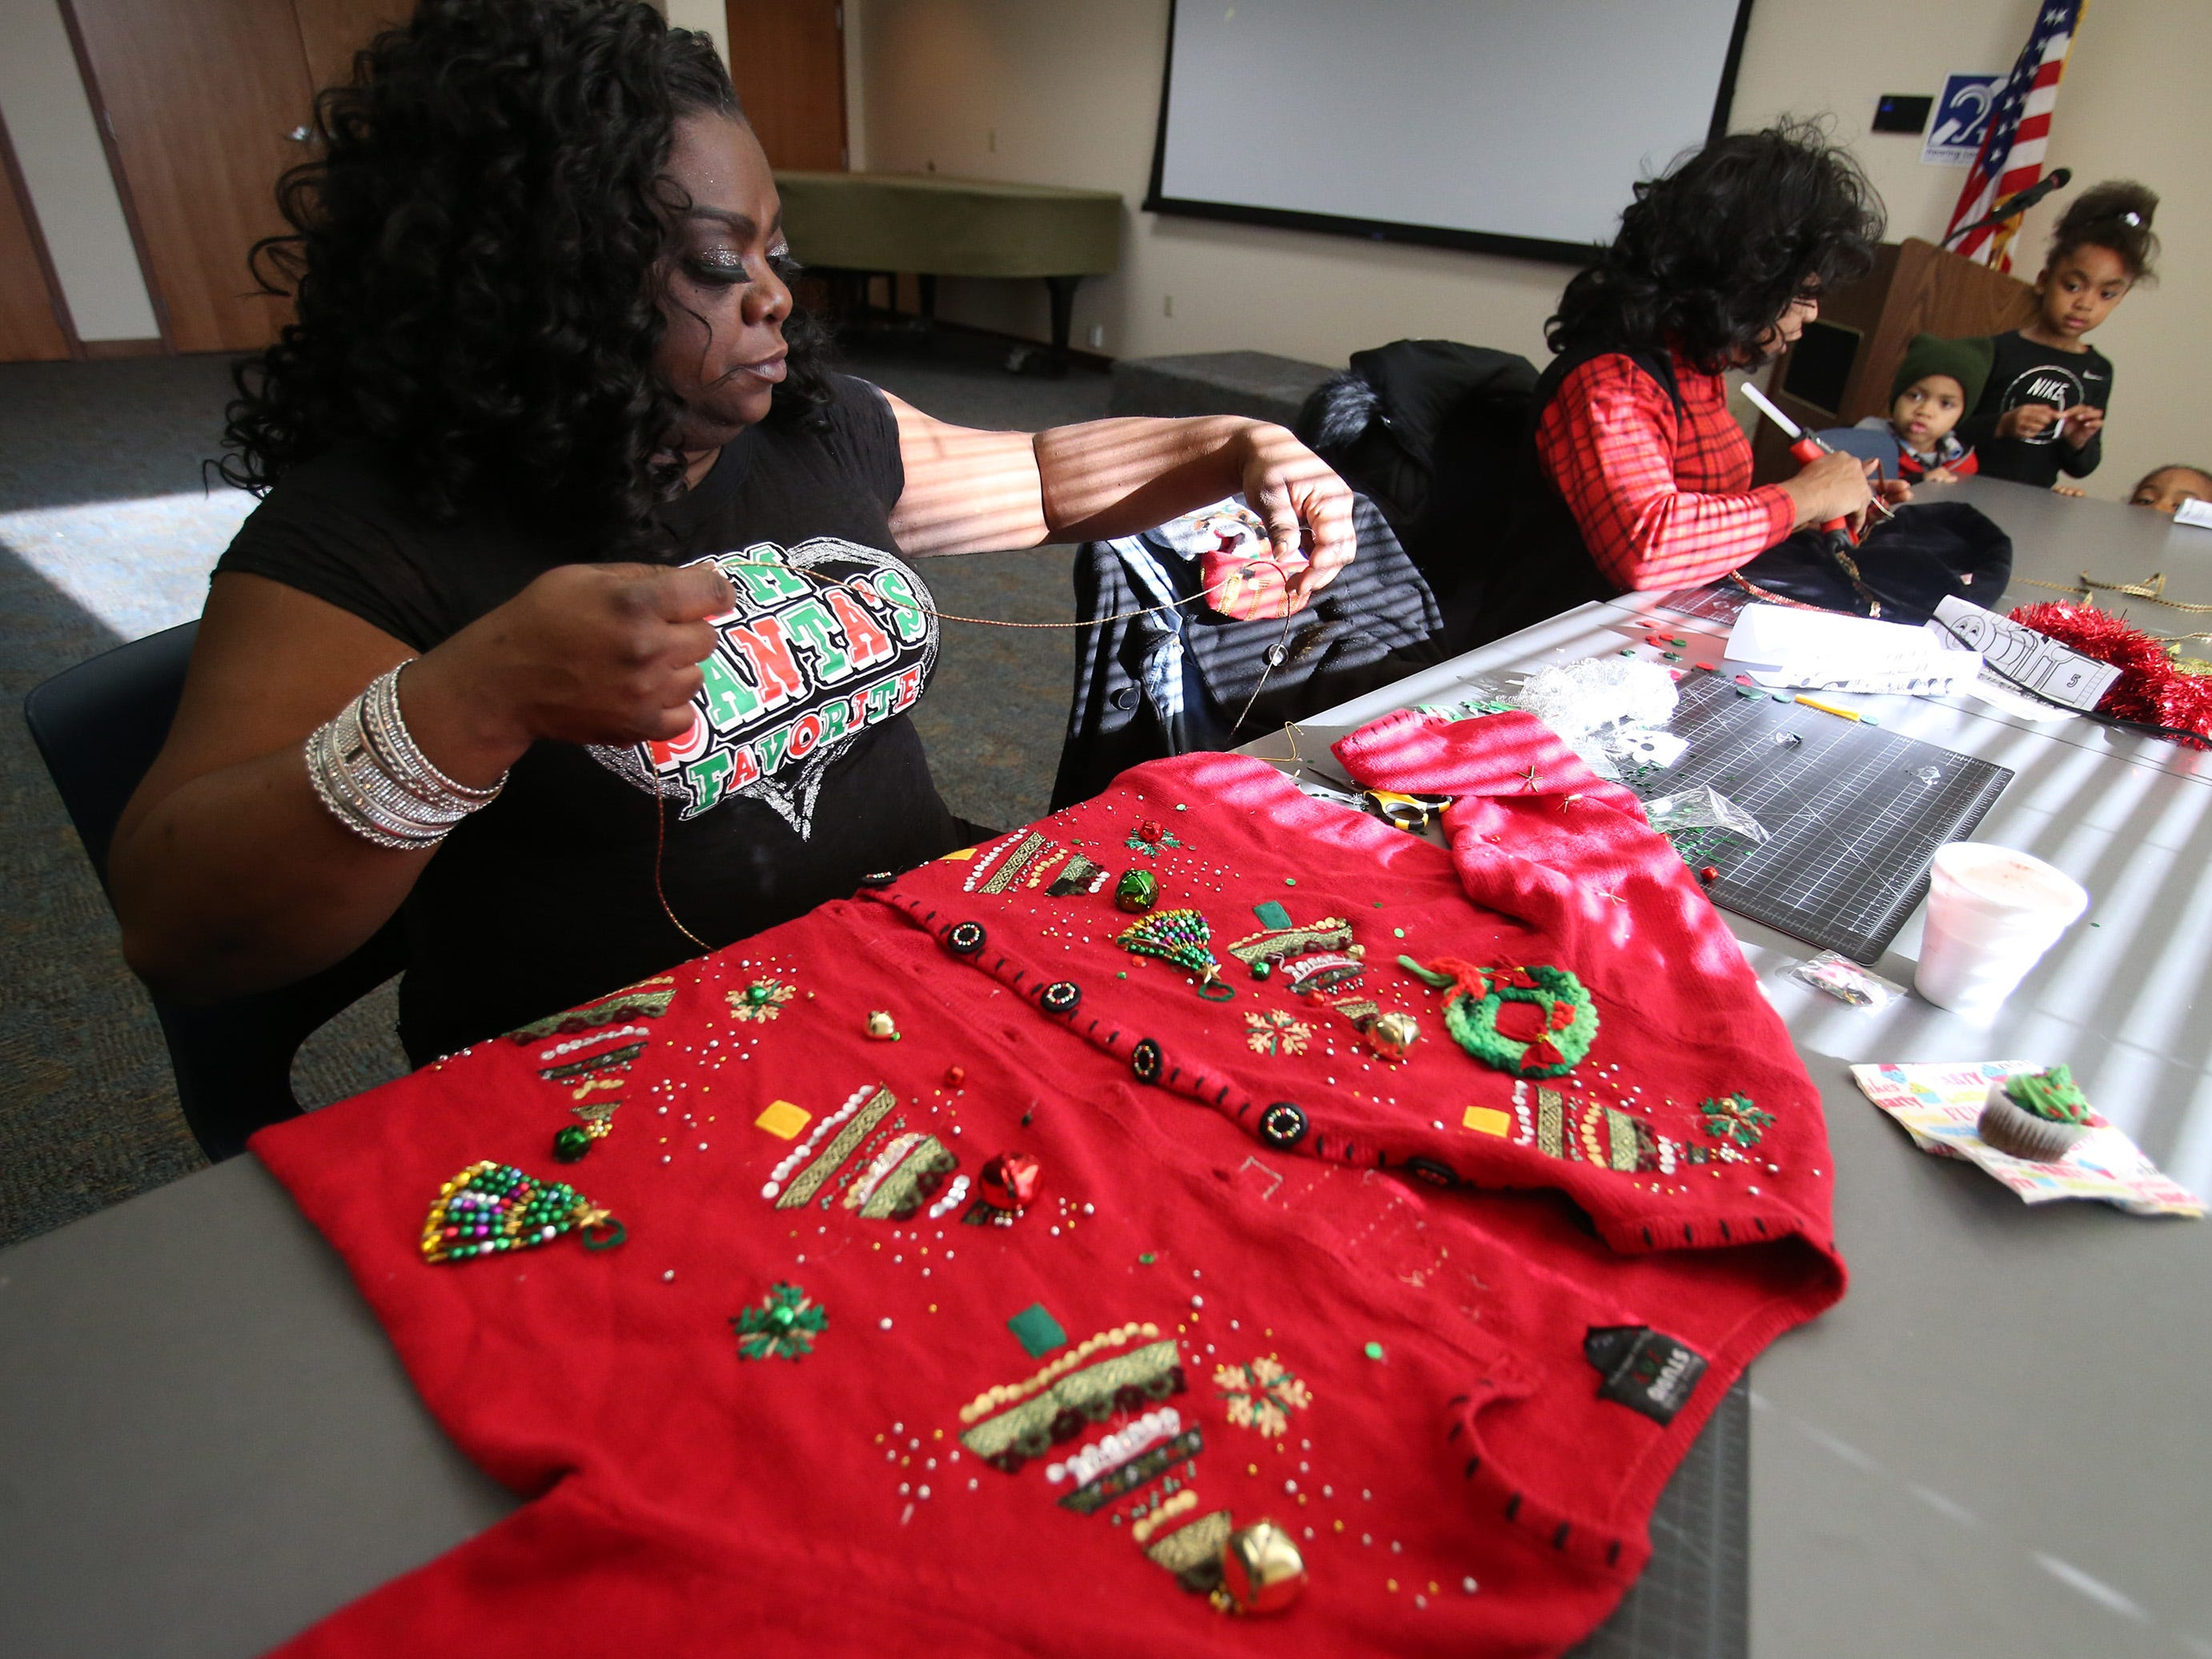 Trina Broughton adds to her creation during an Ugly Christmas Sweater workshop at the Wauwatosa Library on Dec. 15.